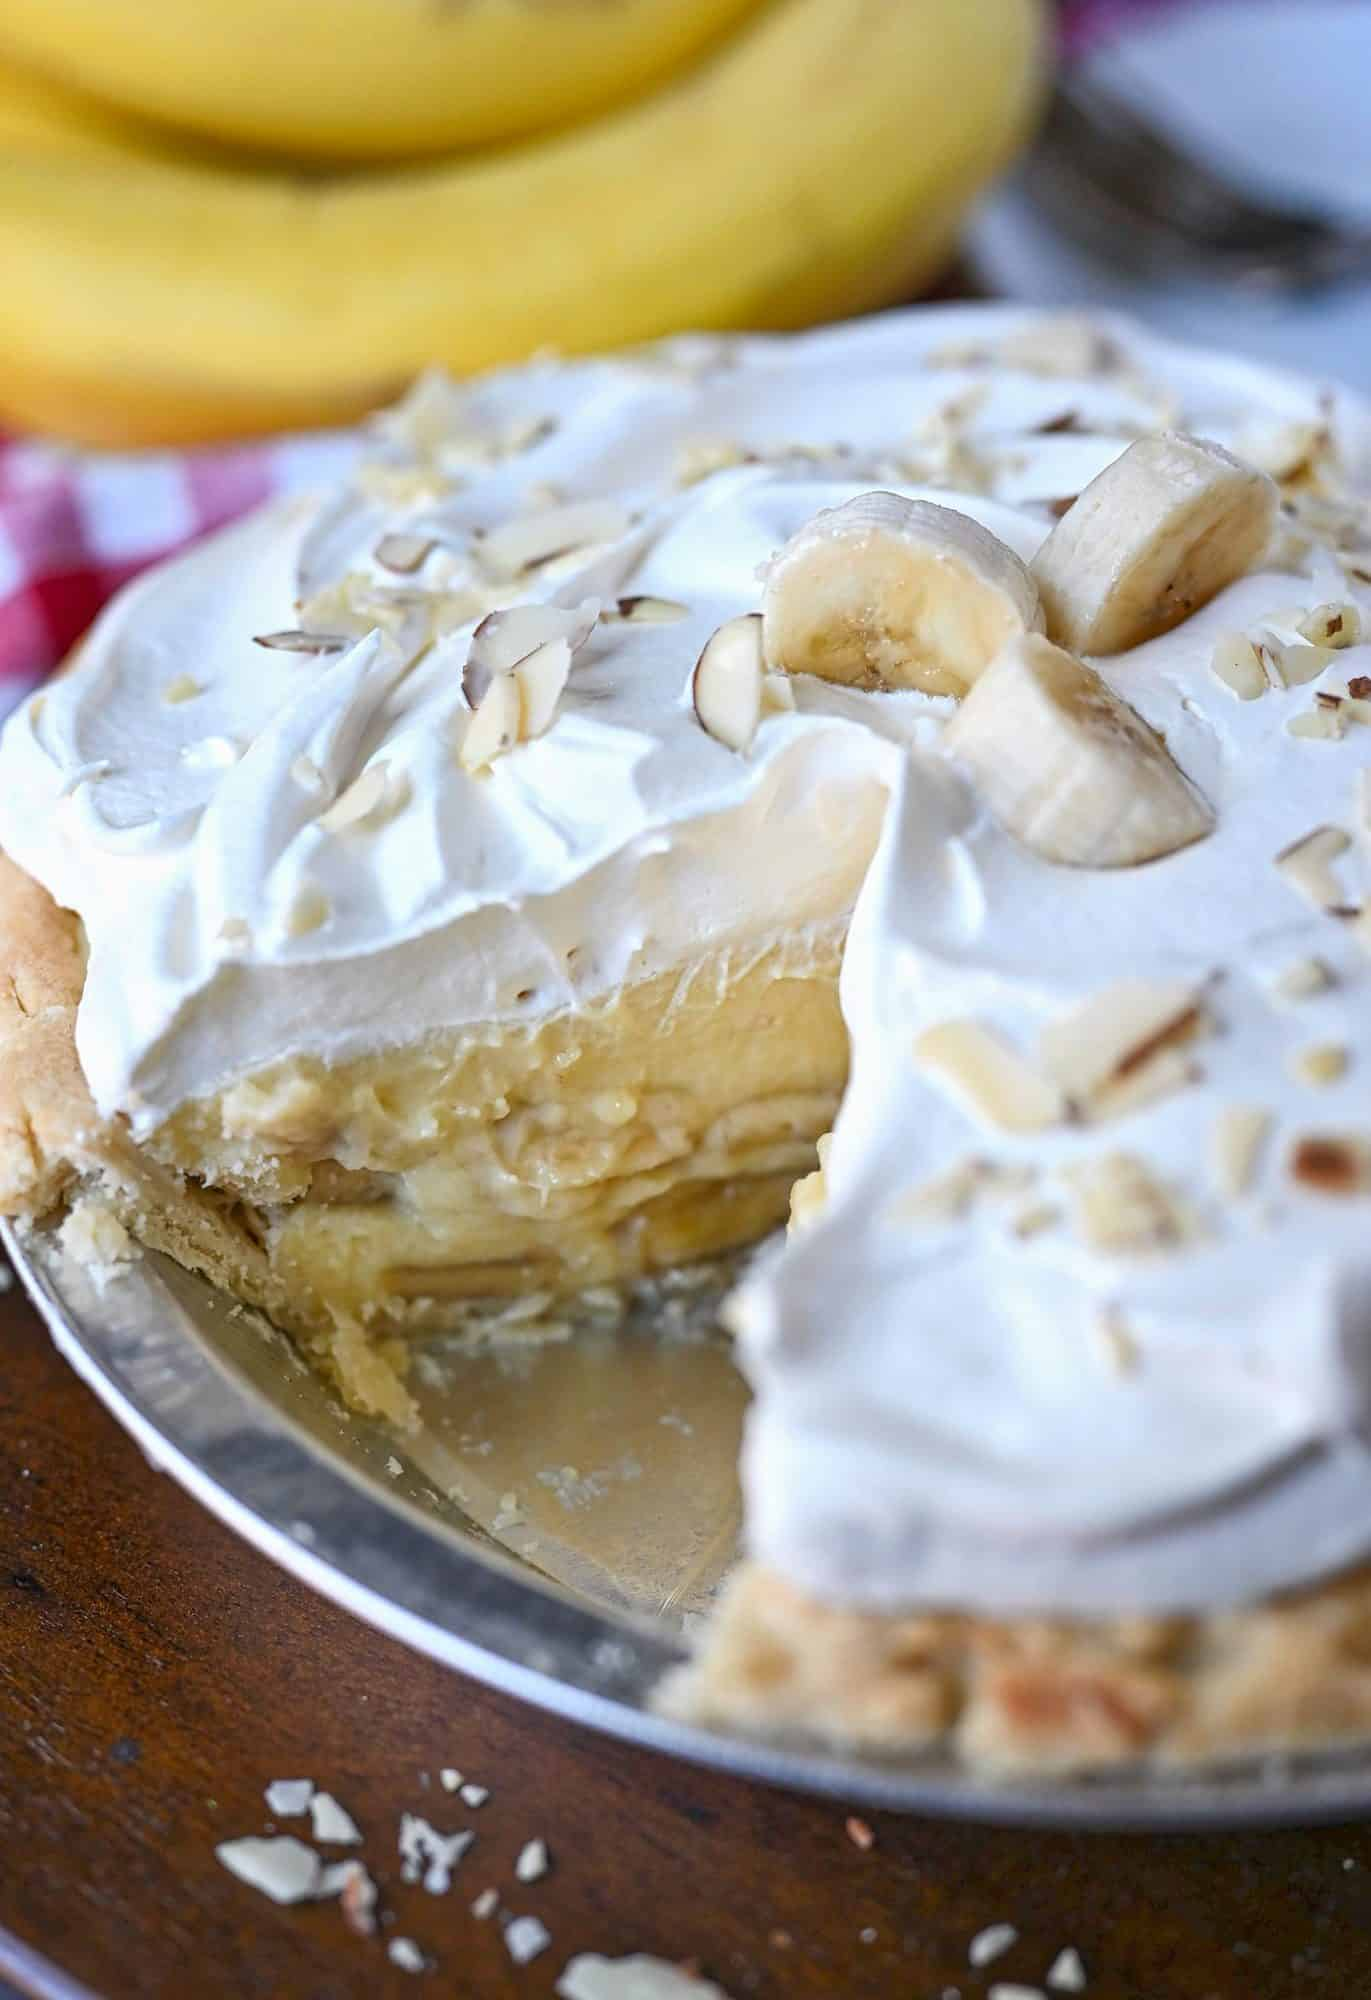 Whole banana cream pie with a slice cut out.